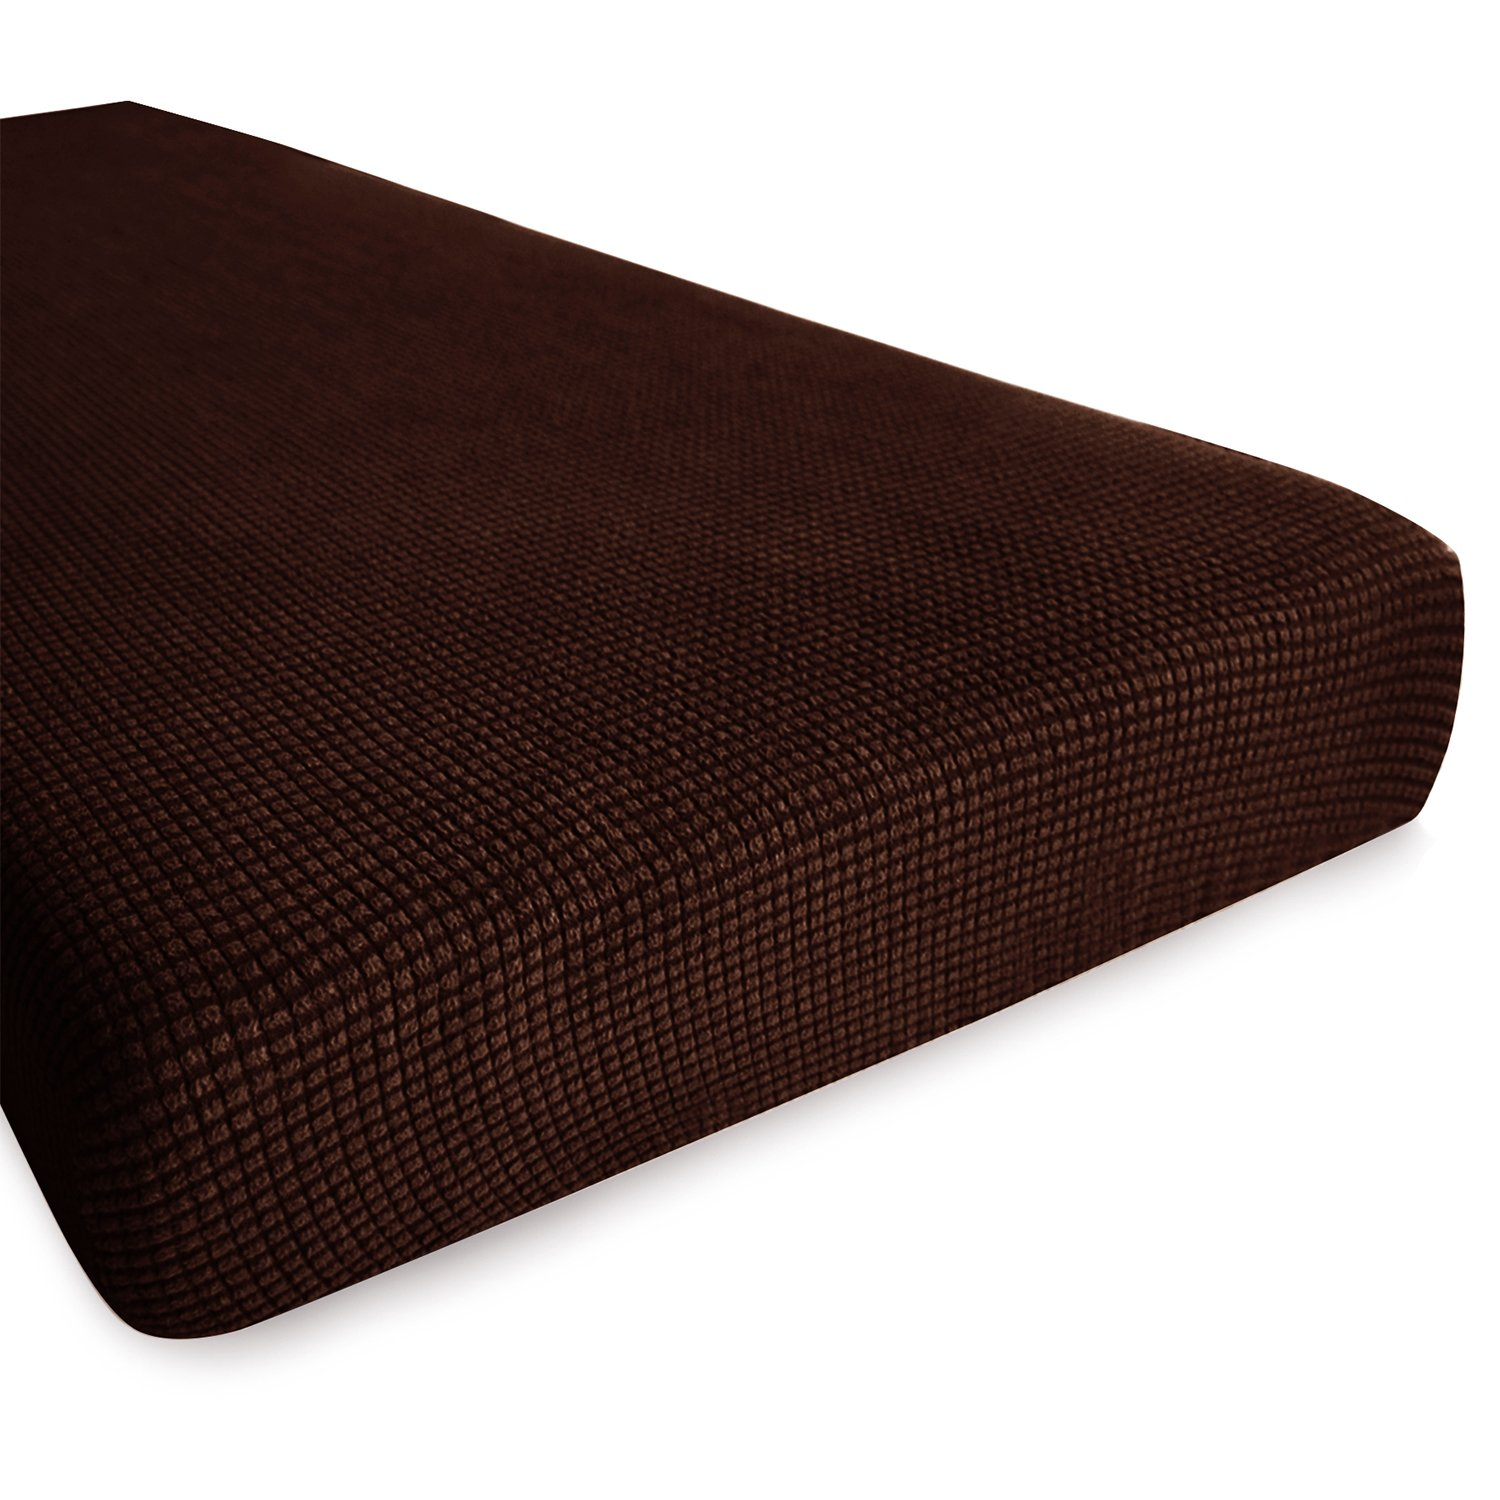 Hokway Stretch Couch Cushion Slipcovers Reversible Cushion Protector Slipcovers Sofa Cushion Protector Covers(Chocolate, Medium)